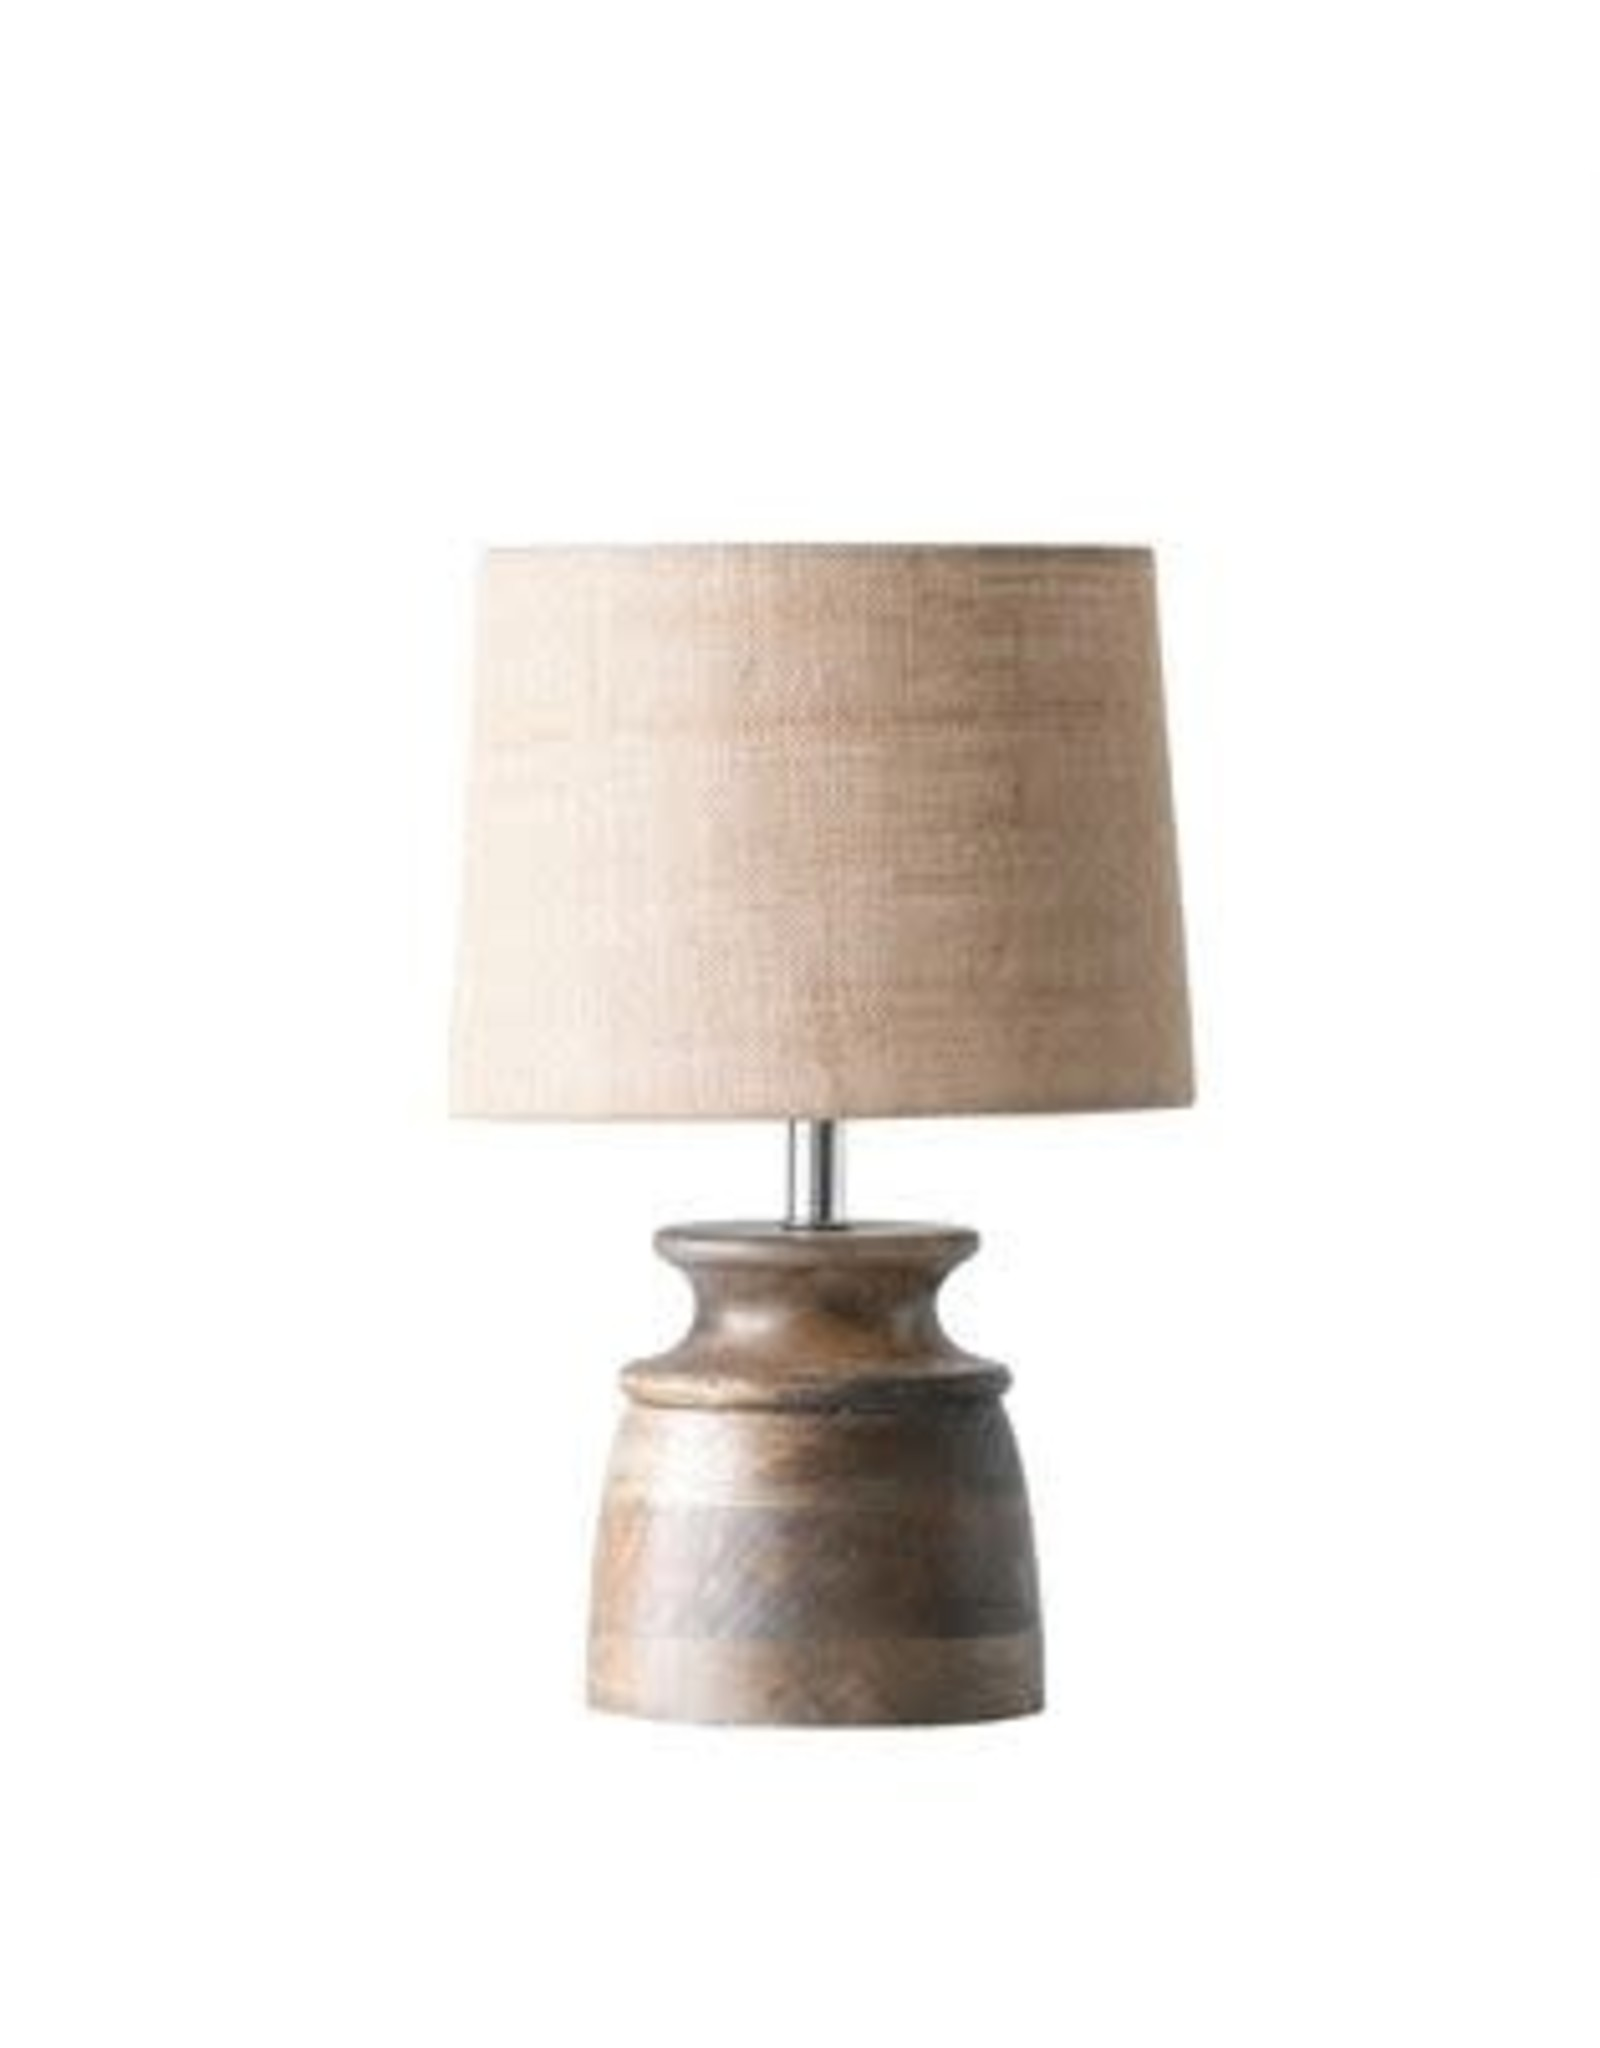 Wood Table Lamp w/ Jute Shade